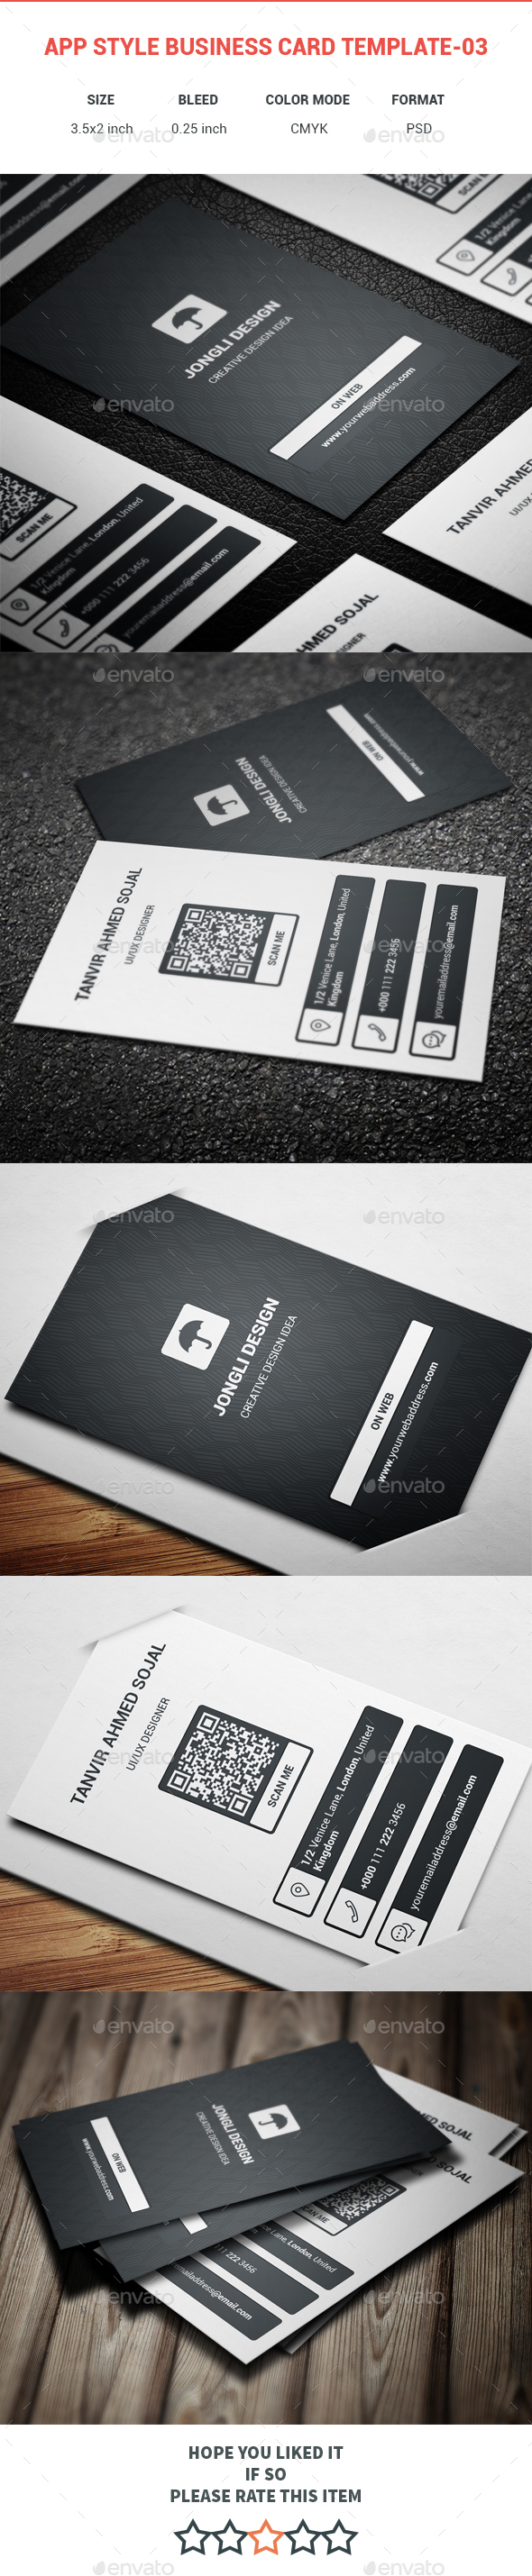 App Style Business Card Template-03 - Creative Business Cards